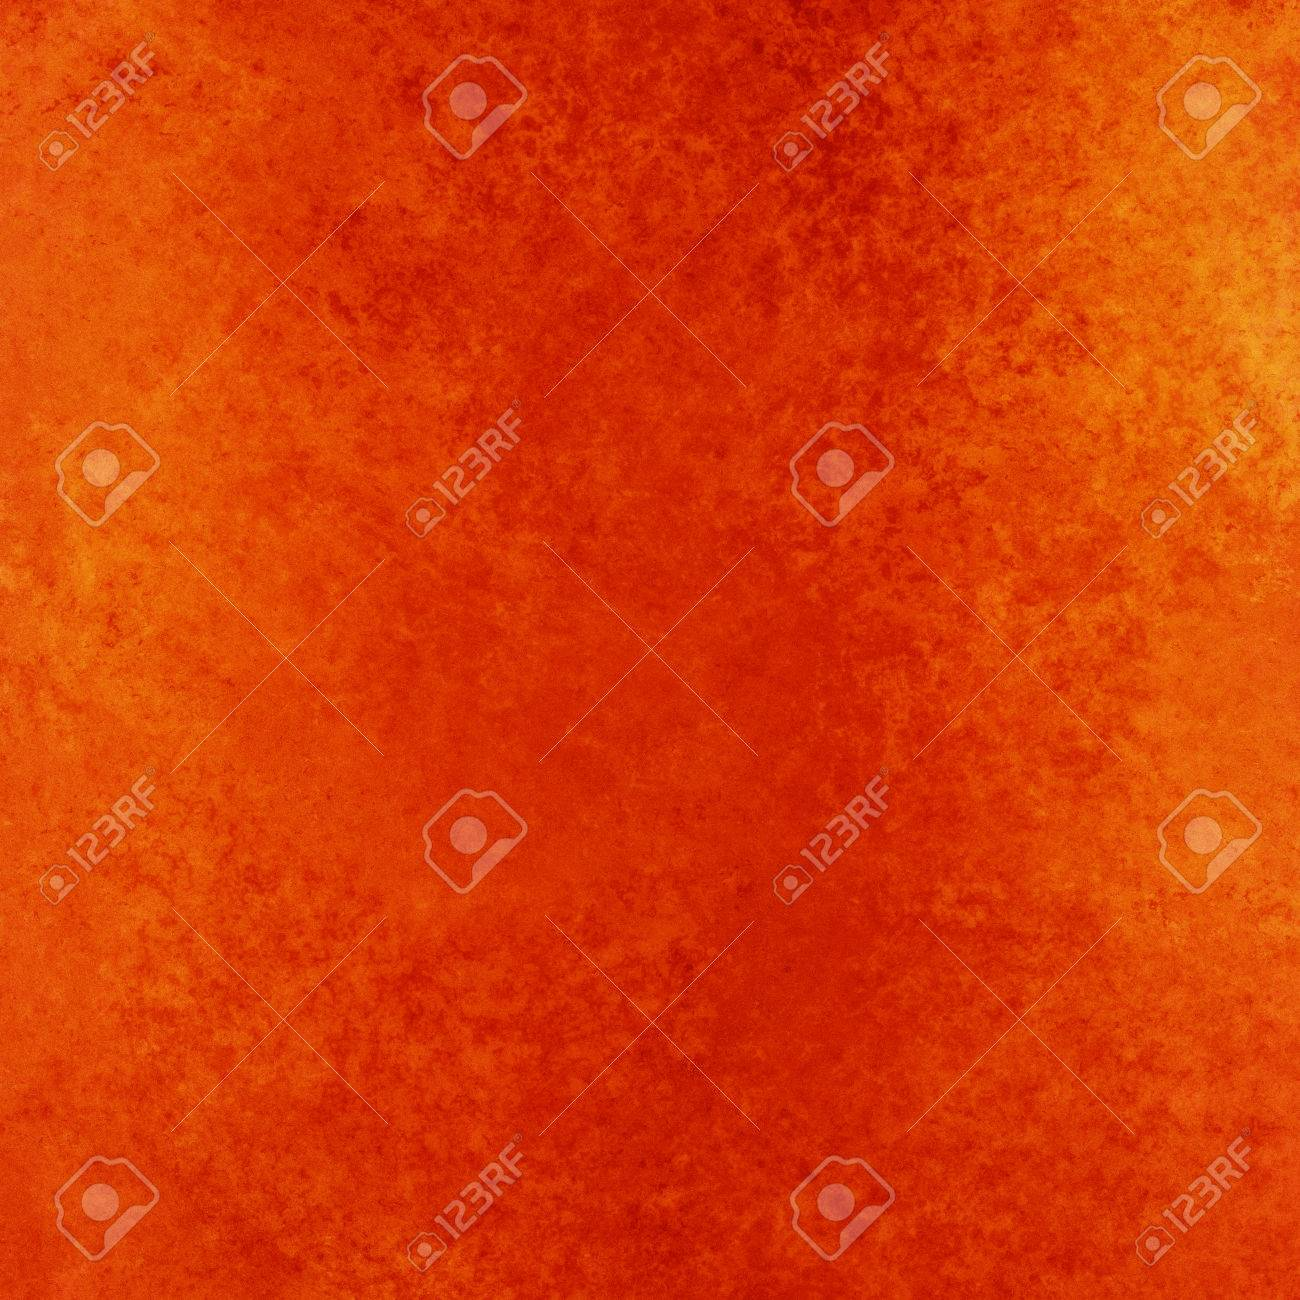 Rustic Orange Red Background With Vintage Textured Paint Stock Photo